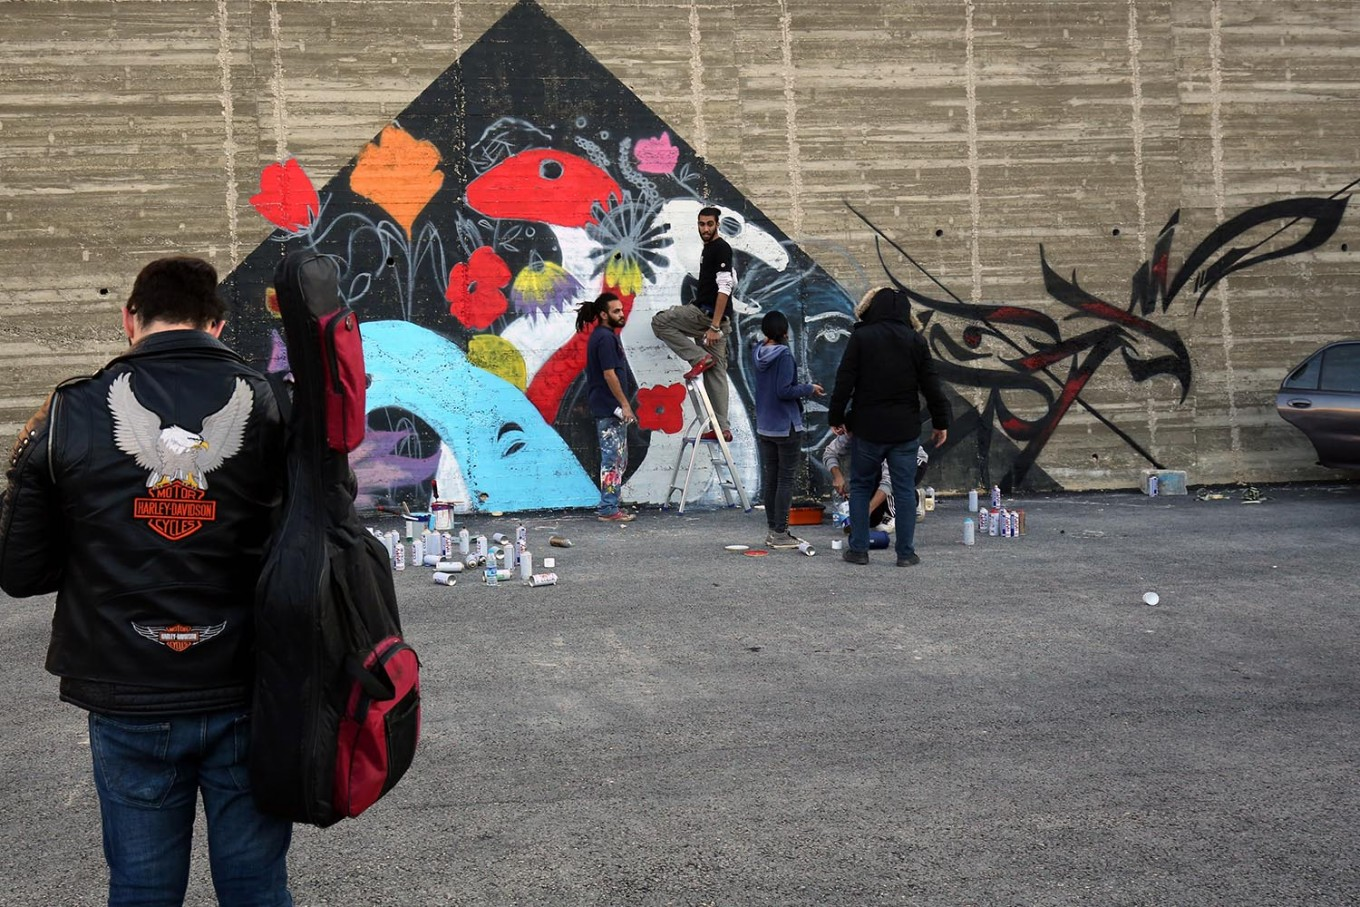 A picture taken on December 16, 2017 shows graffiti artists drawing a mural in the Jordanian capital Amman. A tiny group of graffiti artists are on a mission -- daubing flowers, faces and patterns across the capital Amman to bring more colour to the lives of its four million inhabitants.